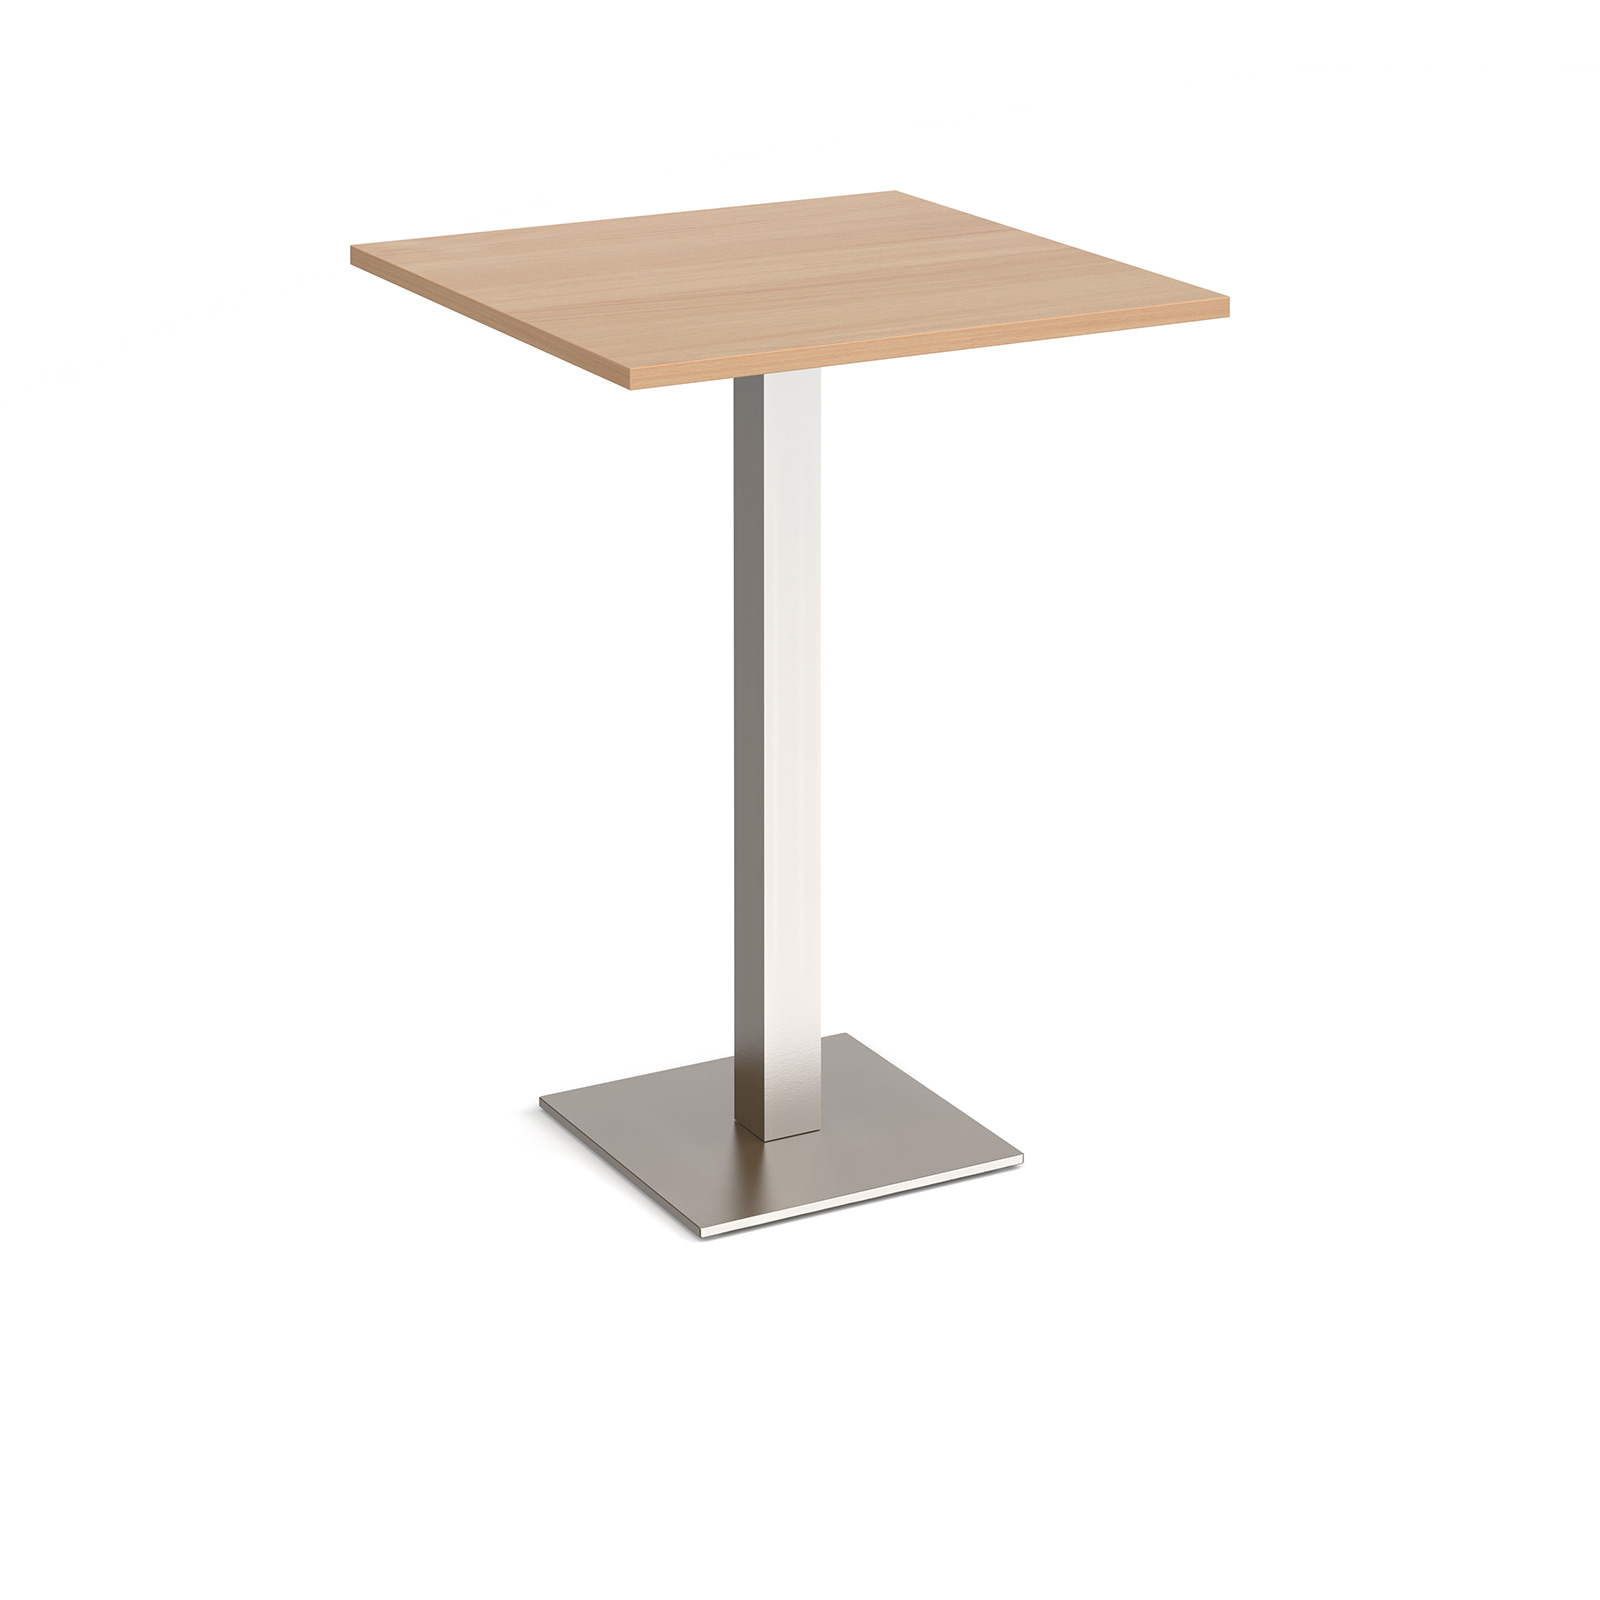 Canteen / Dining Brescia square poseur table with flat square base